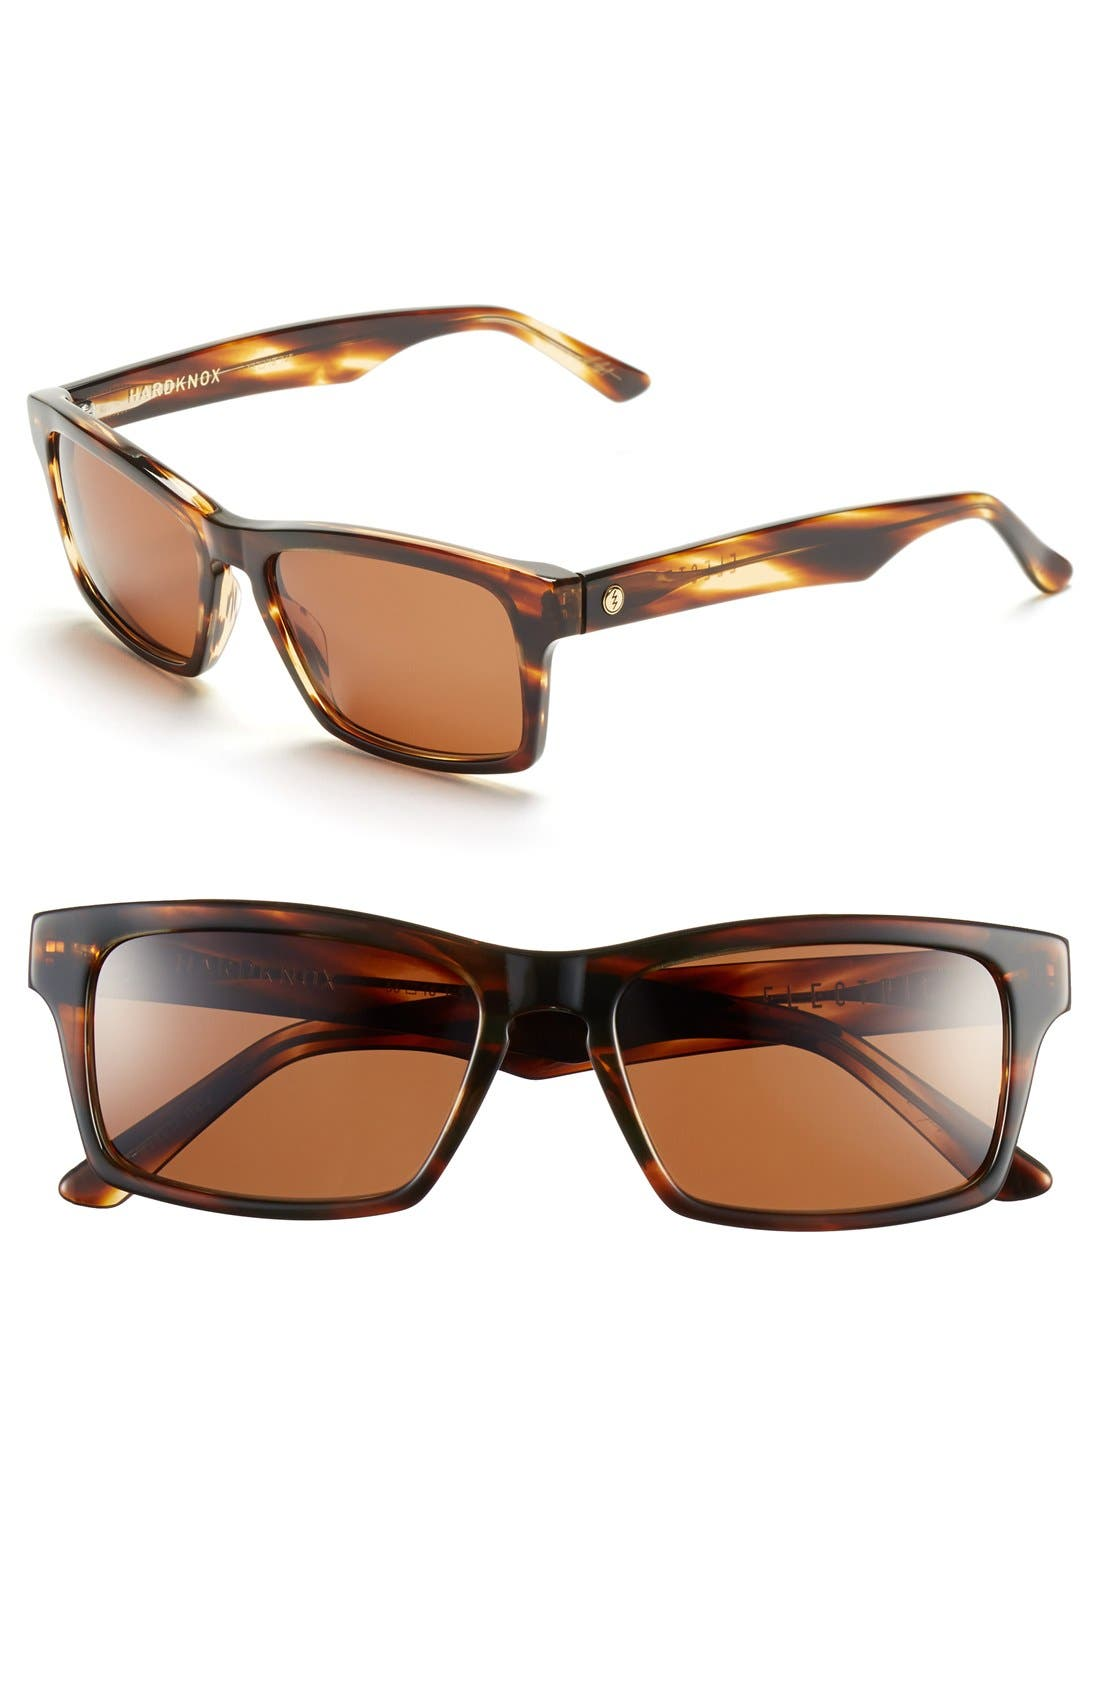 'Hardknox' 56mm Sunglasses,                             Main thumbnail 1, color,                             200